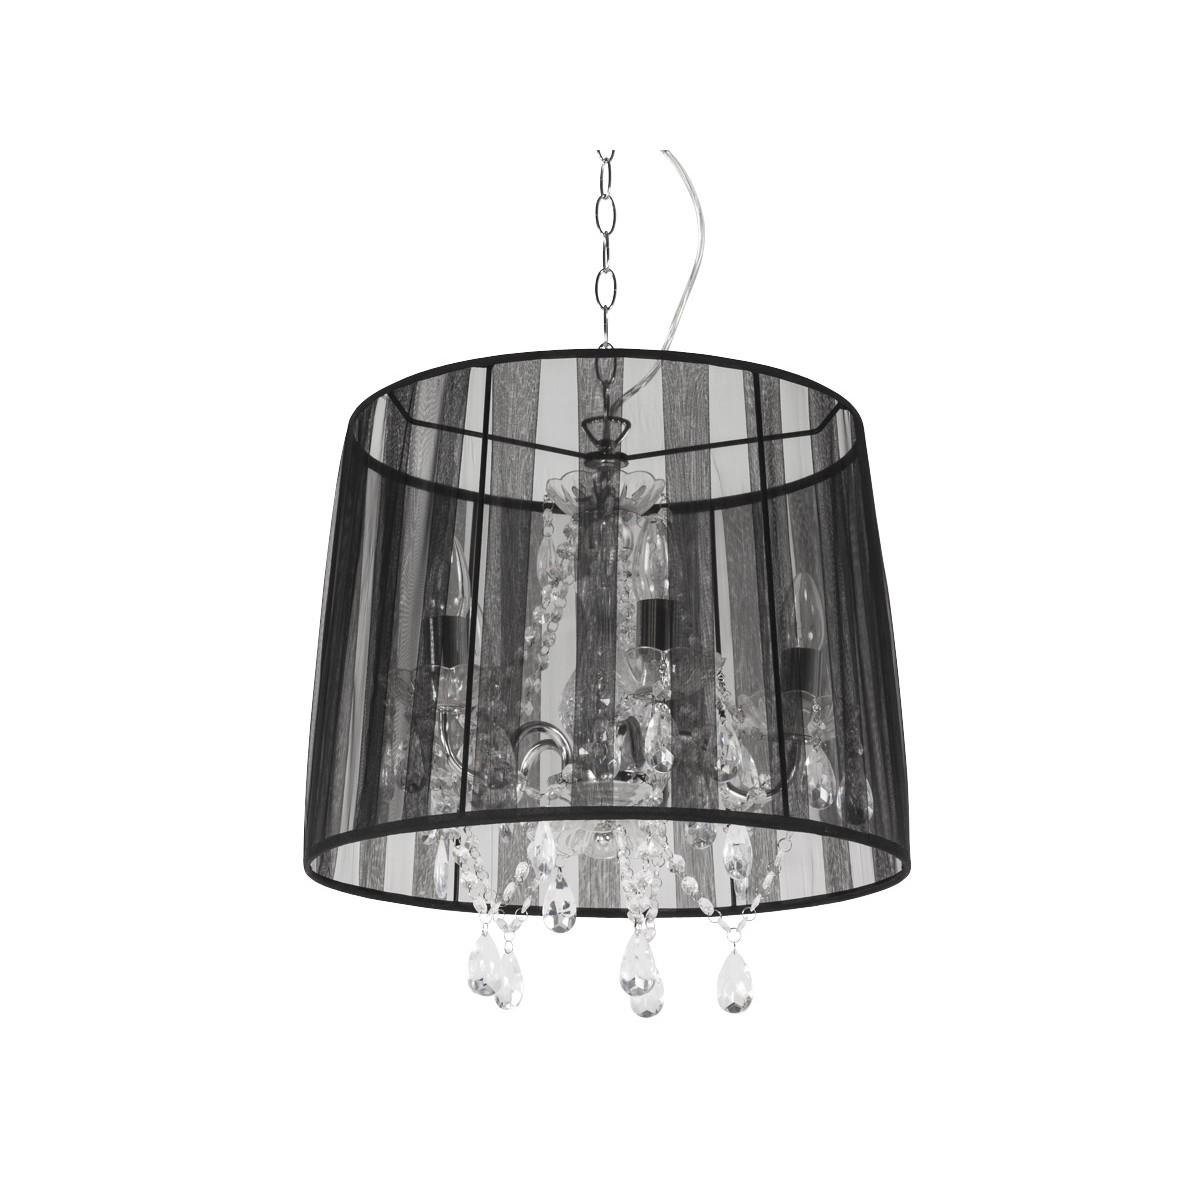 Alouette Black Fabric Lampshade Hanging Lamp Amp Story 2976